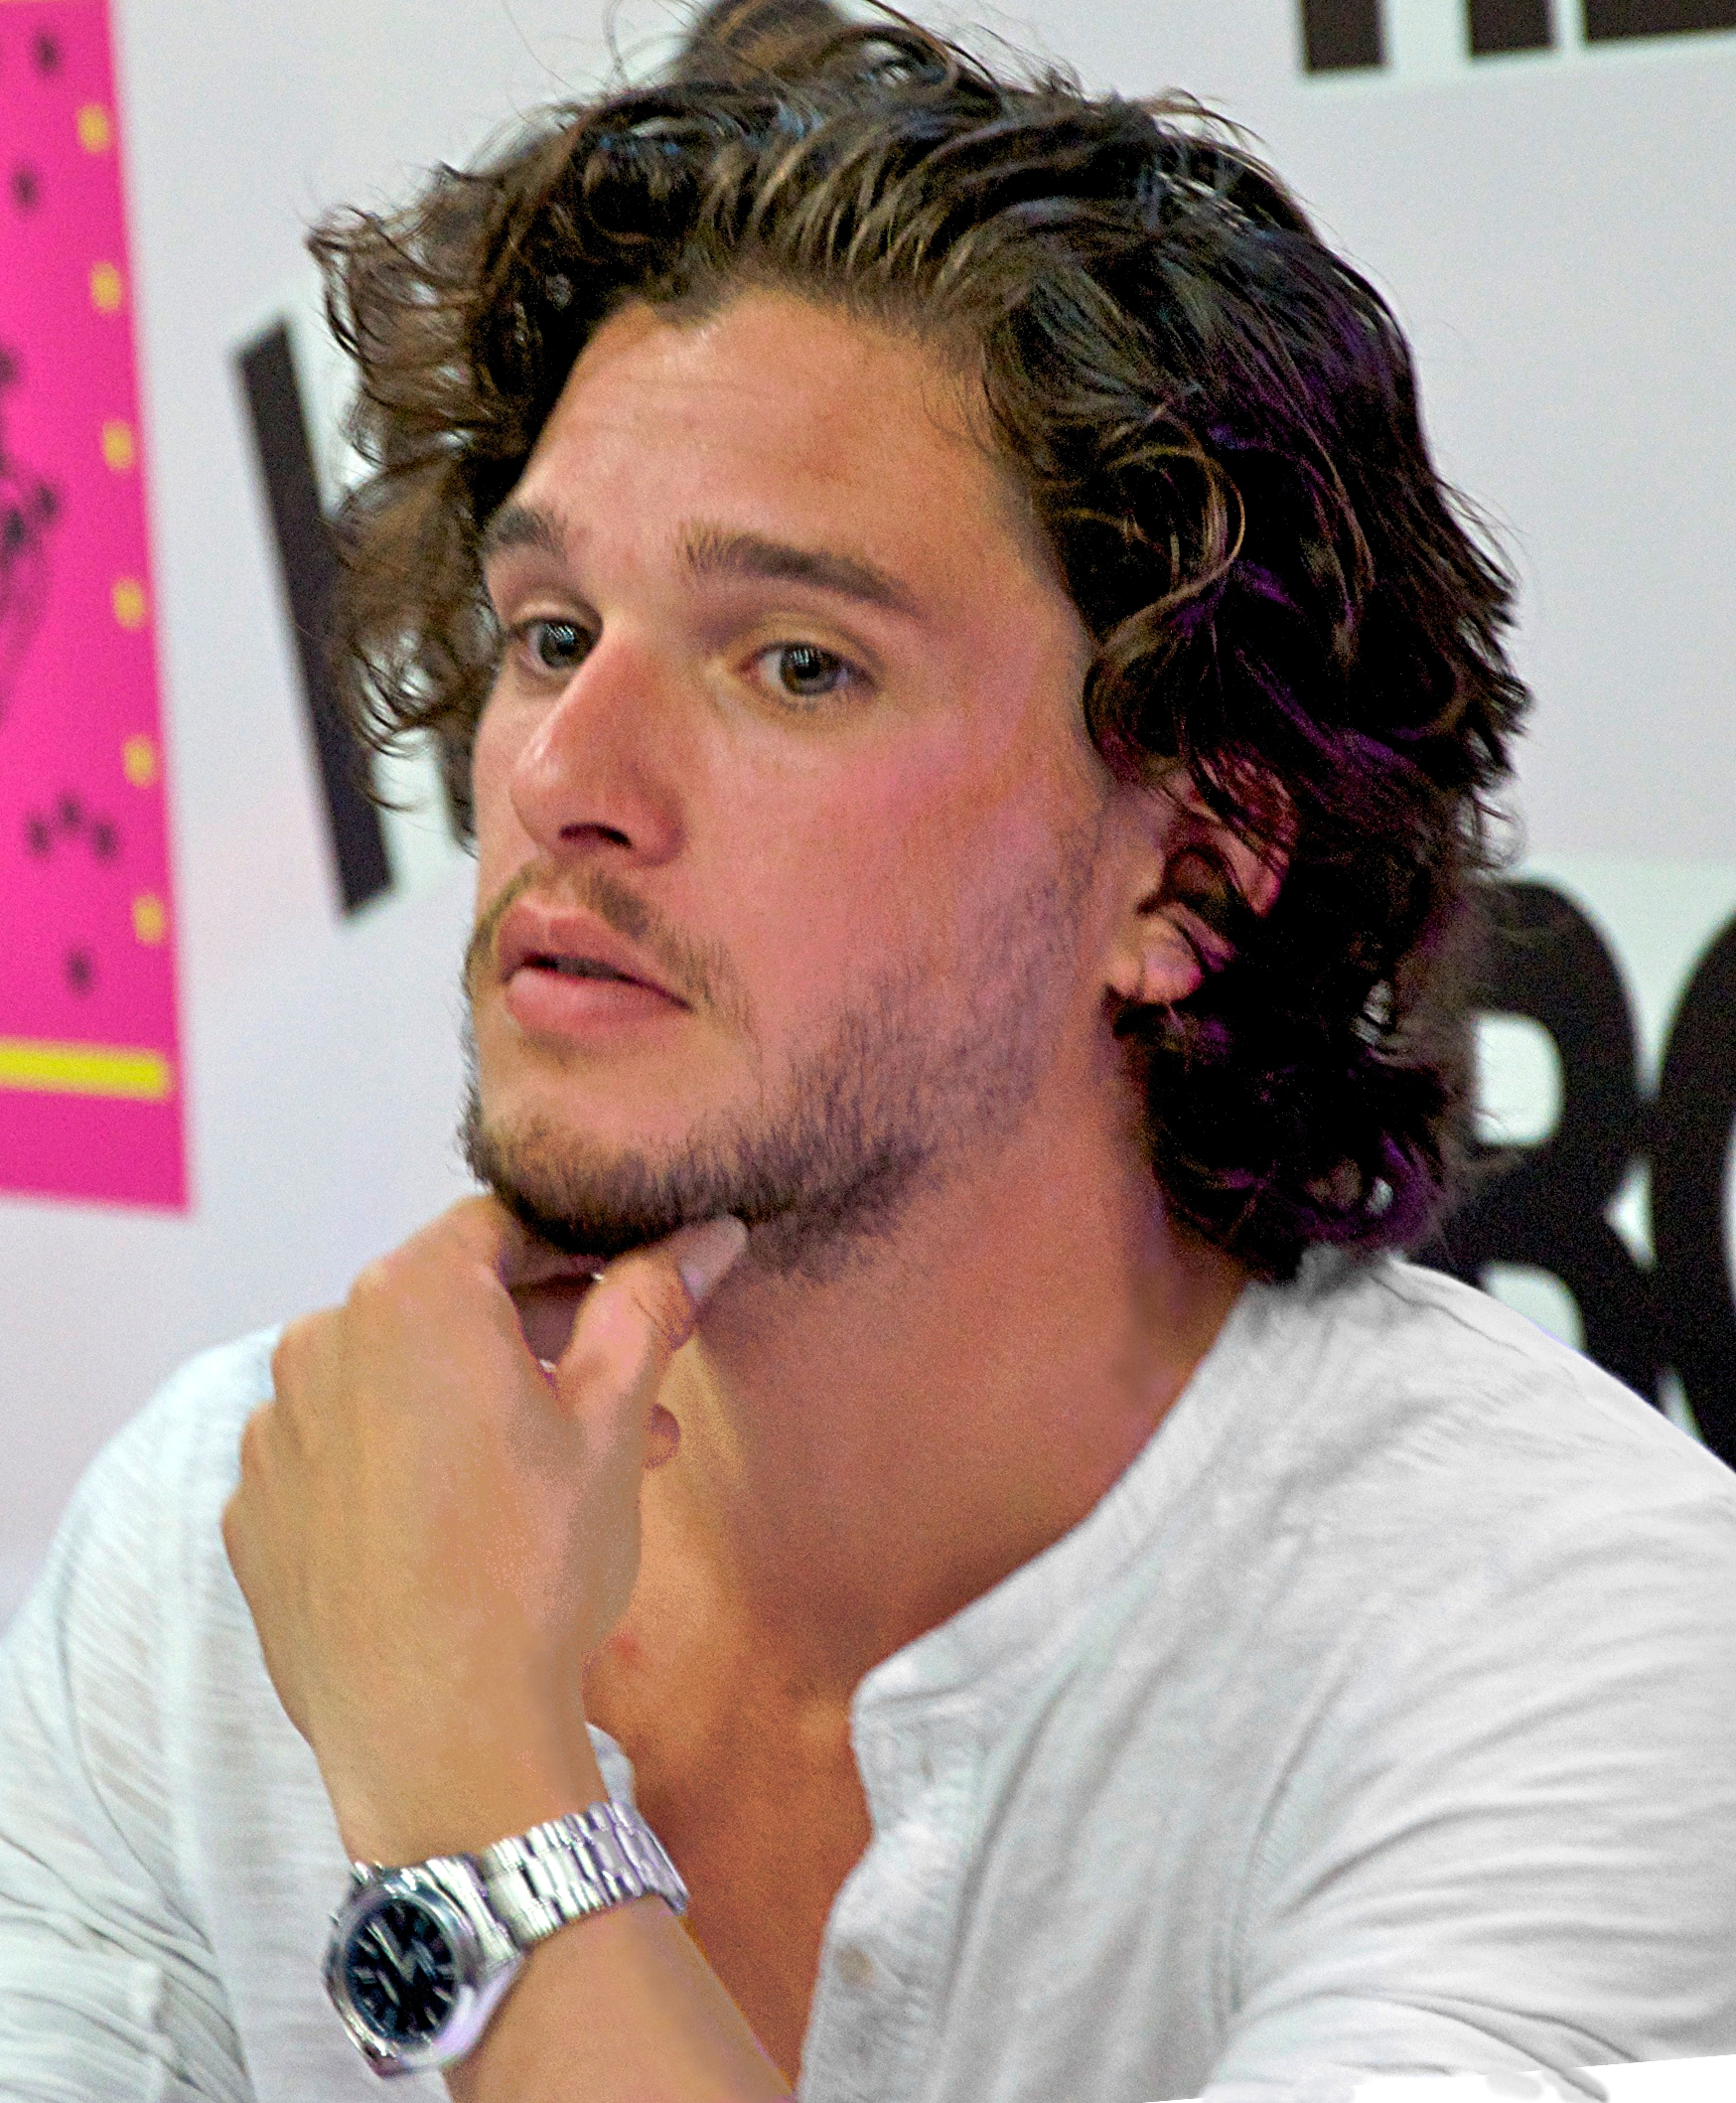 [Image: Kit_Harington_2011_cropped.jpg]